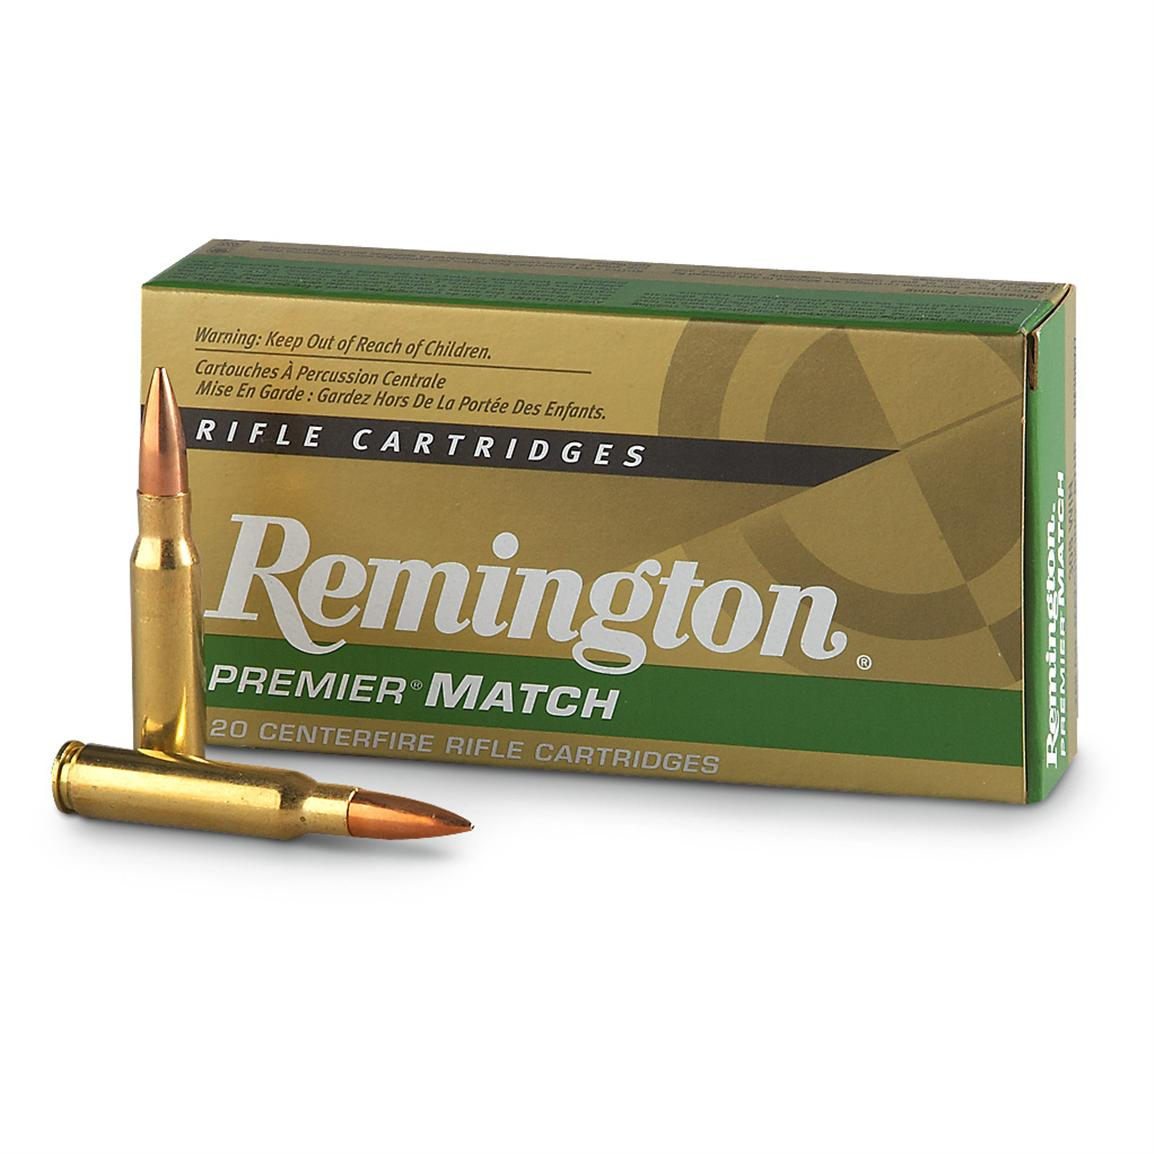 Remington Premier Match 308 Winchester Ammo 168 Grain Sierra MatchKing Boat Tail Hollow Point